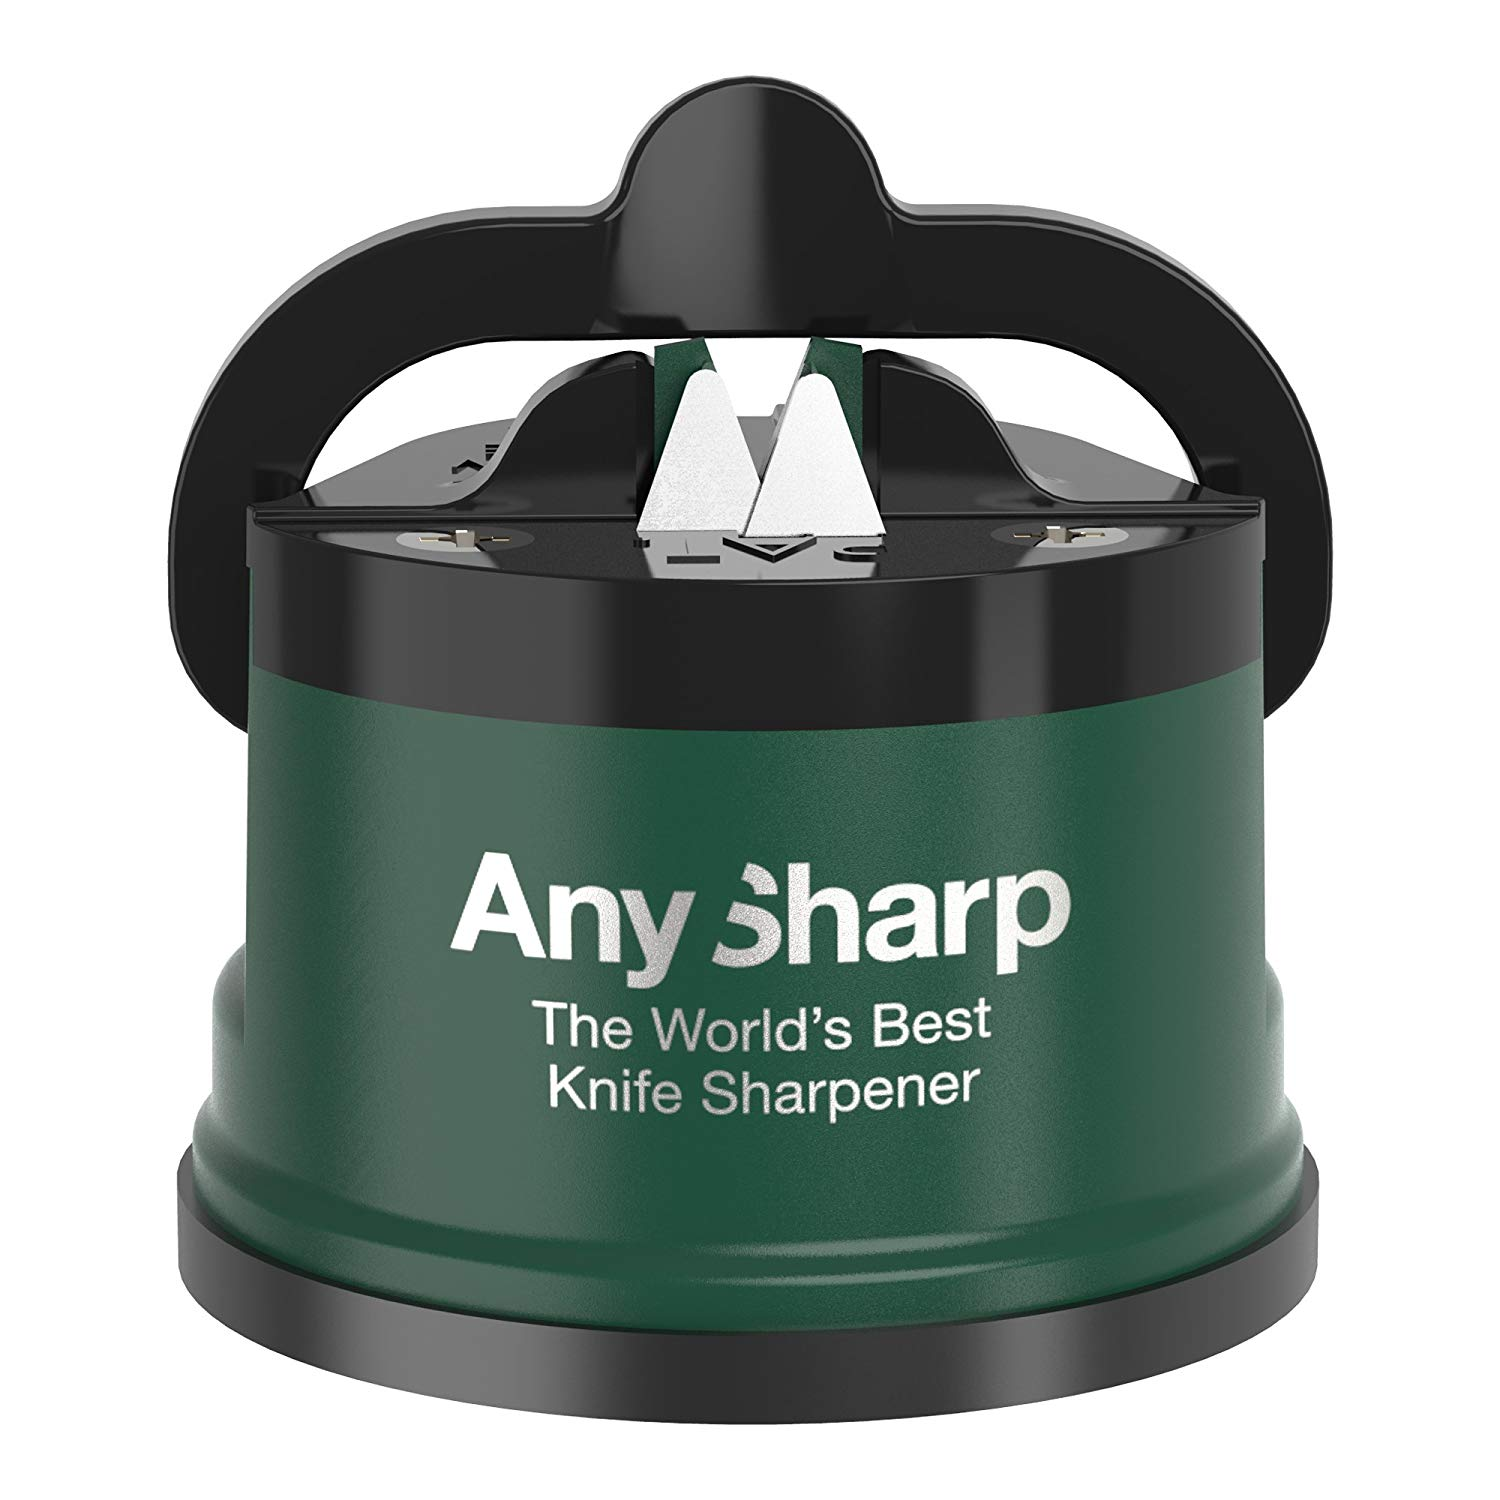 New Anysharp Pro Knife One Handed Use Sharpener With Power Grip Surface